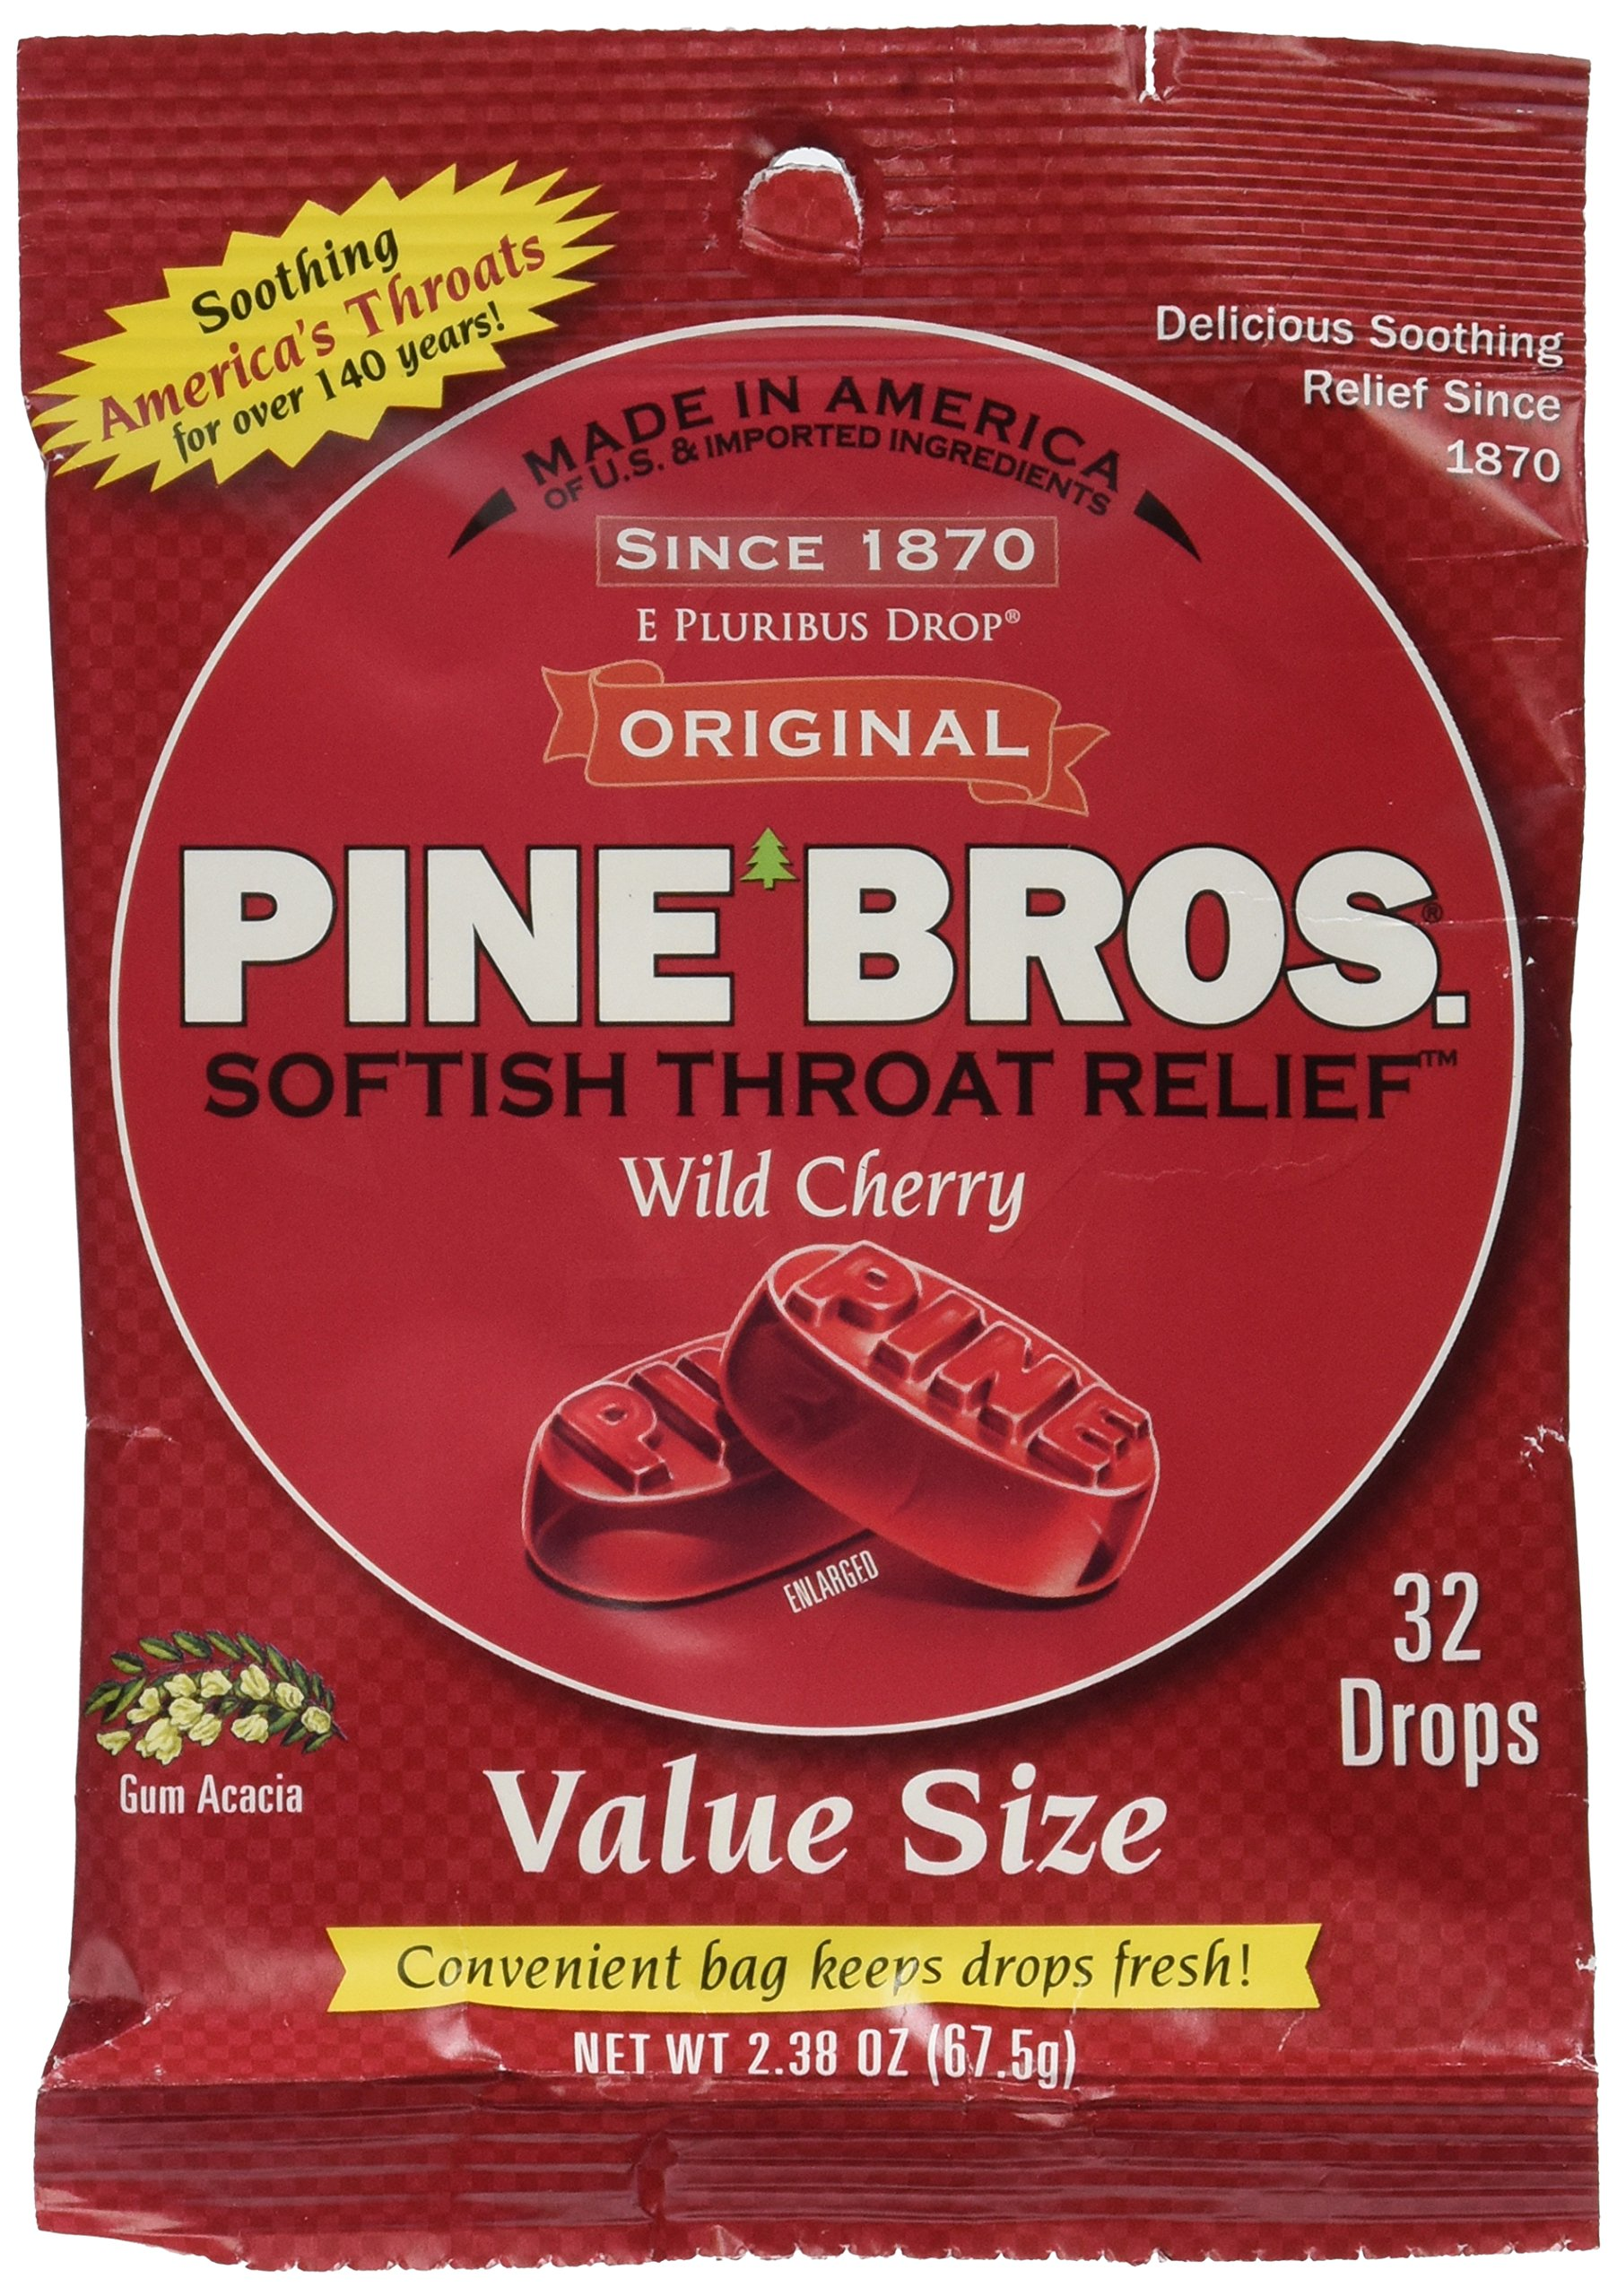 Pine Bros. Softish Throat Drops Value Size Wild Cherry - 32 Drops, Pack of 3